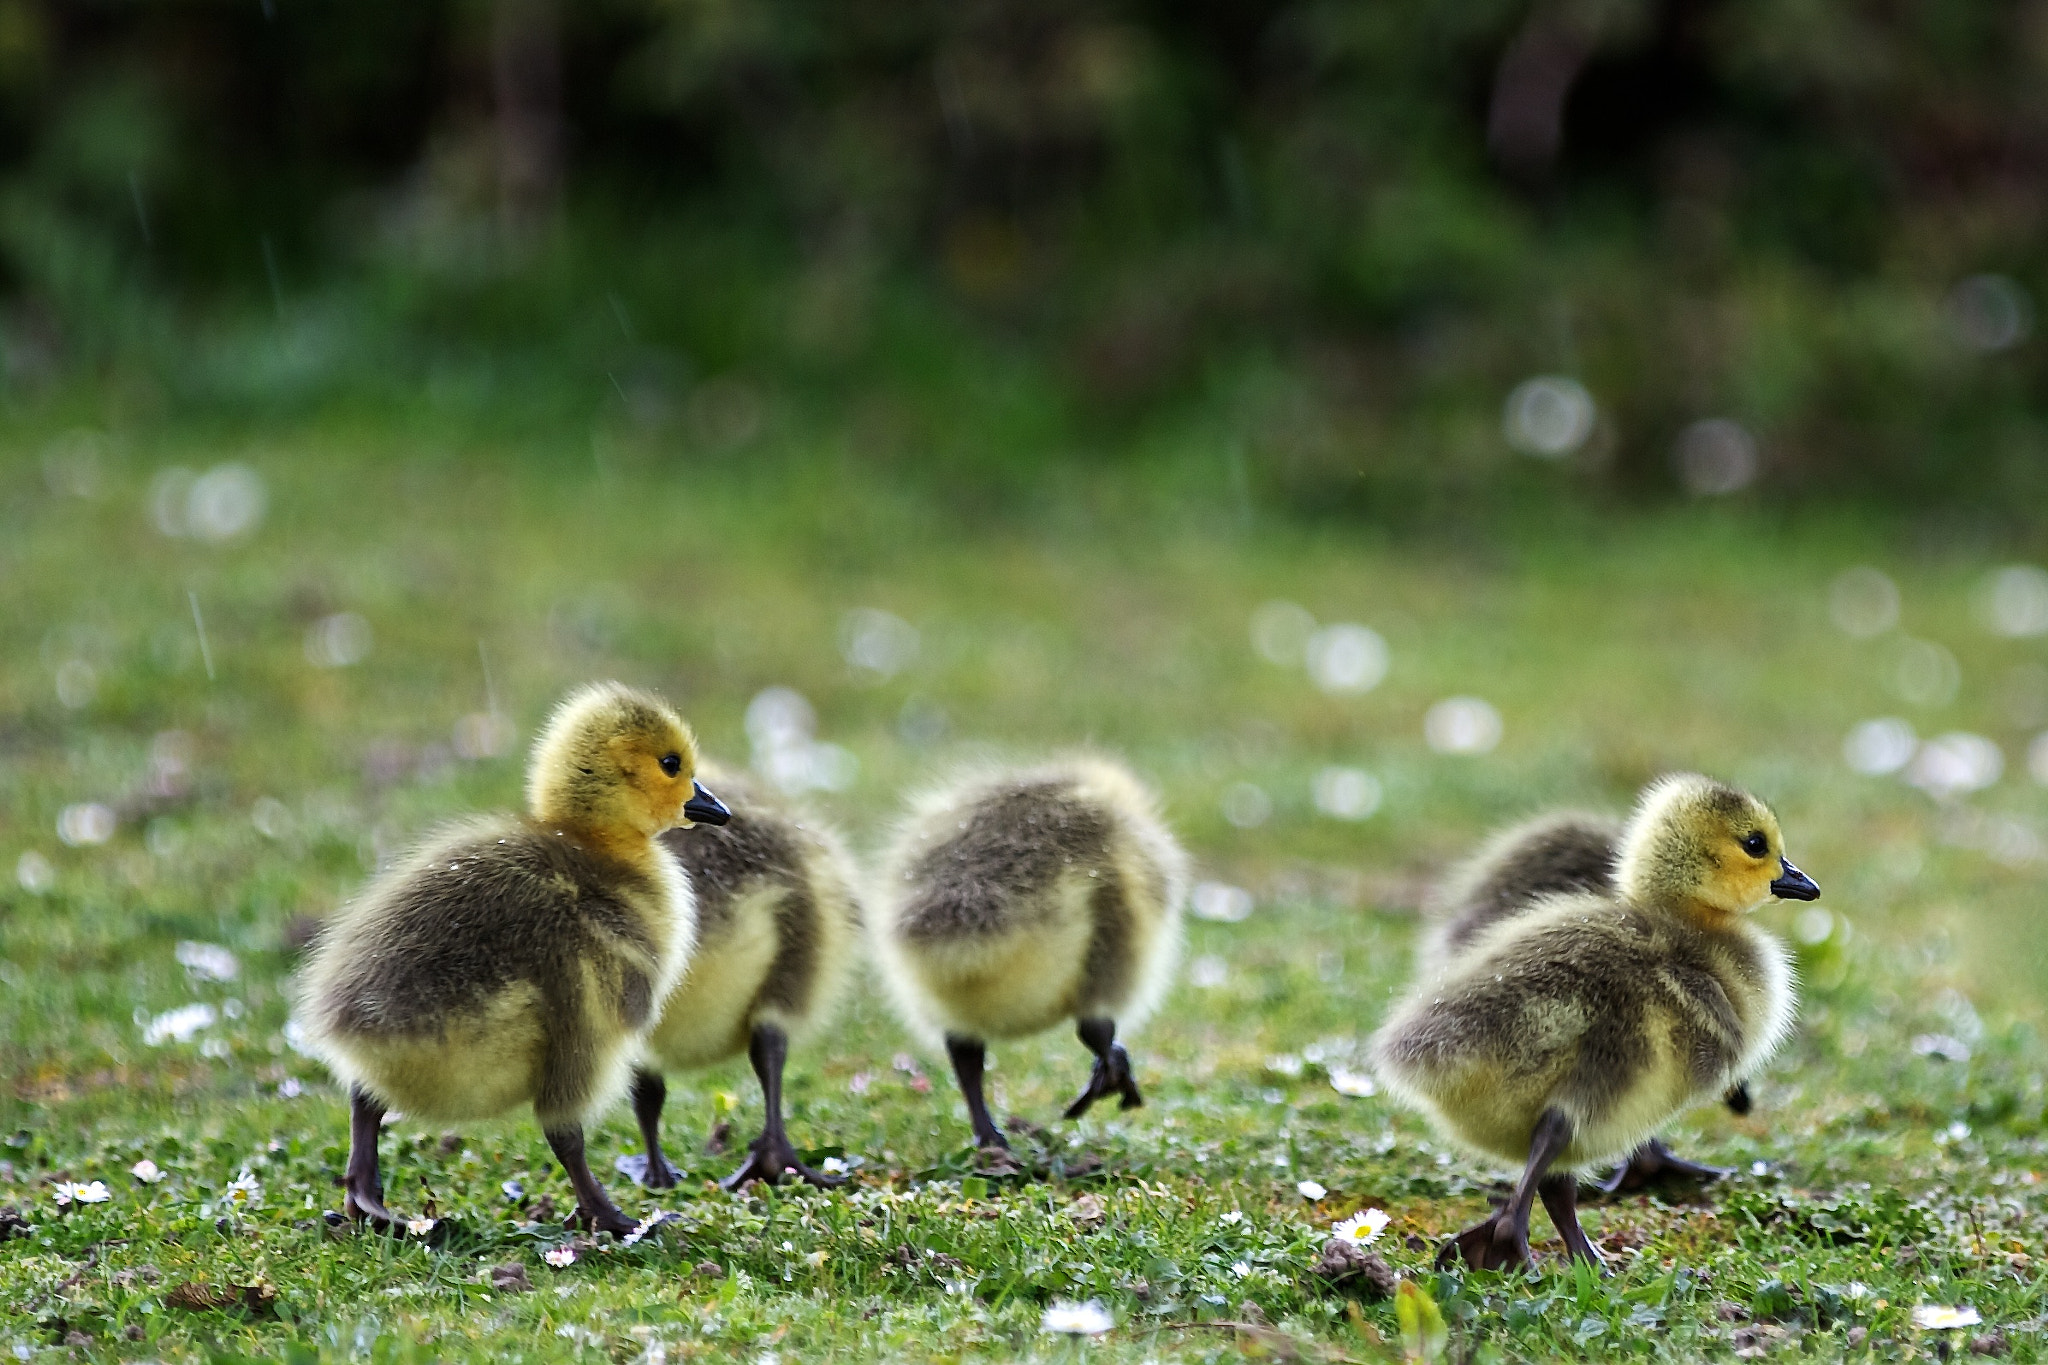 Photograph Goslings in the Rain by Steven Parker on 500px